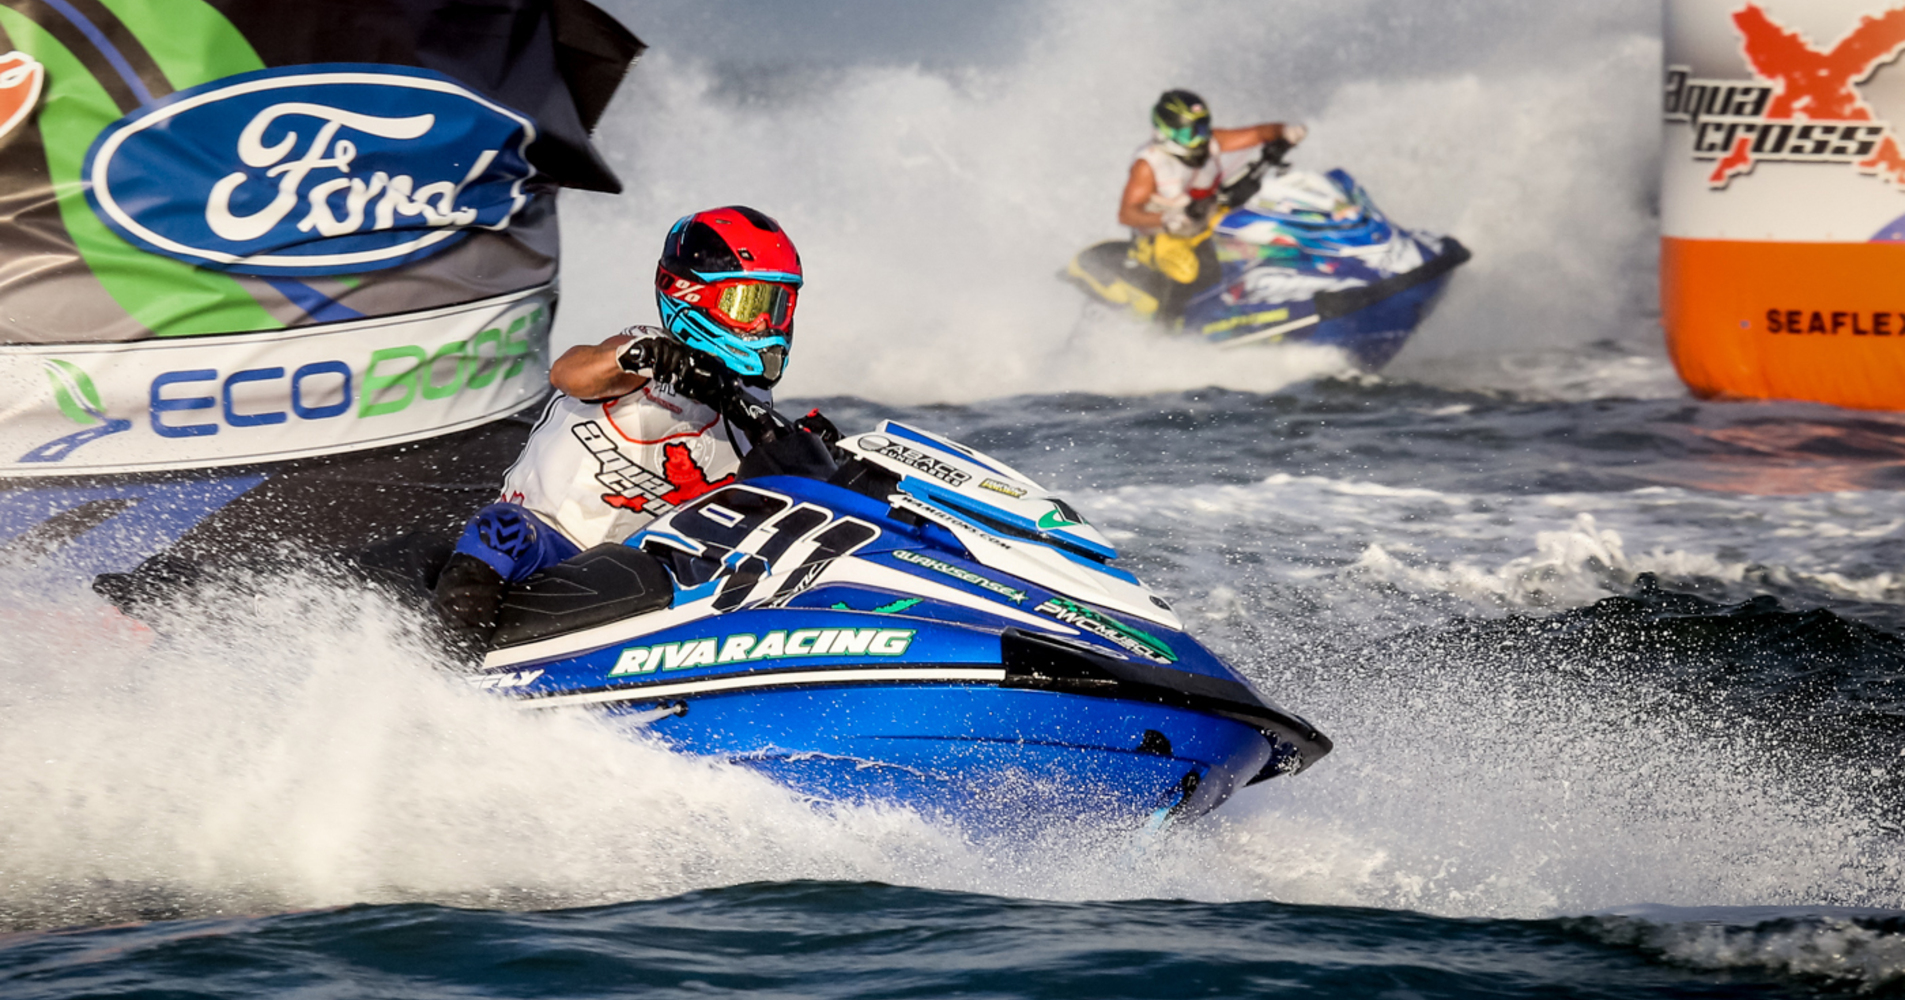 Eric Francis and Nicolas Rius will both be confident of taking top spot in Key West